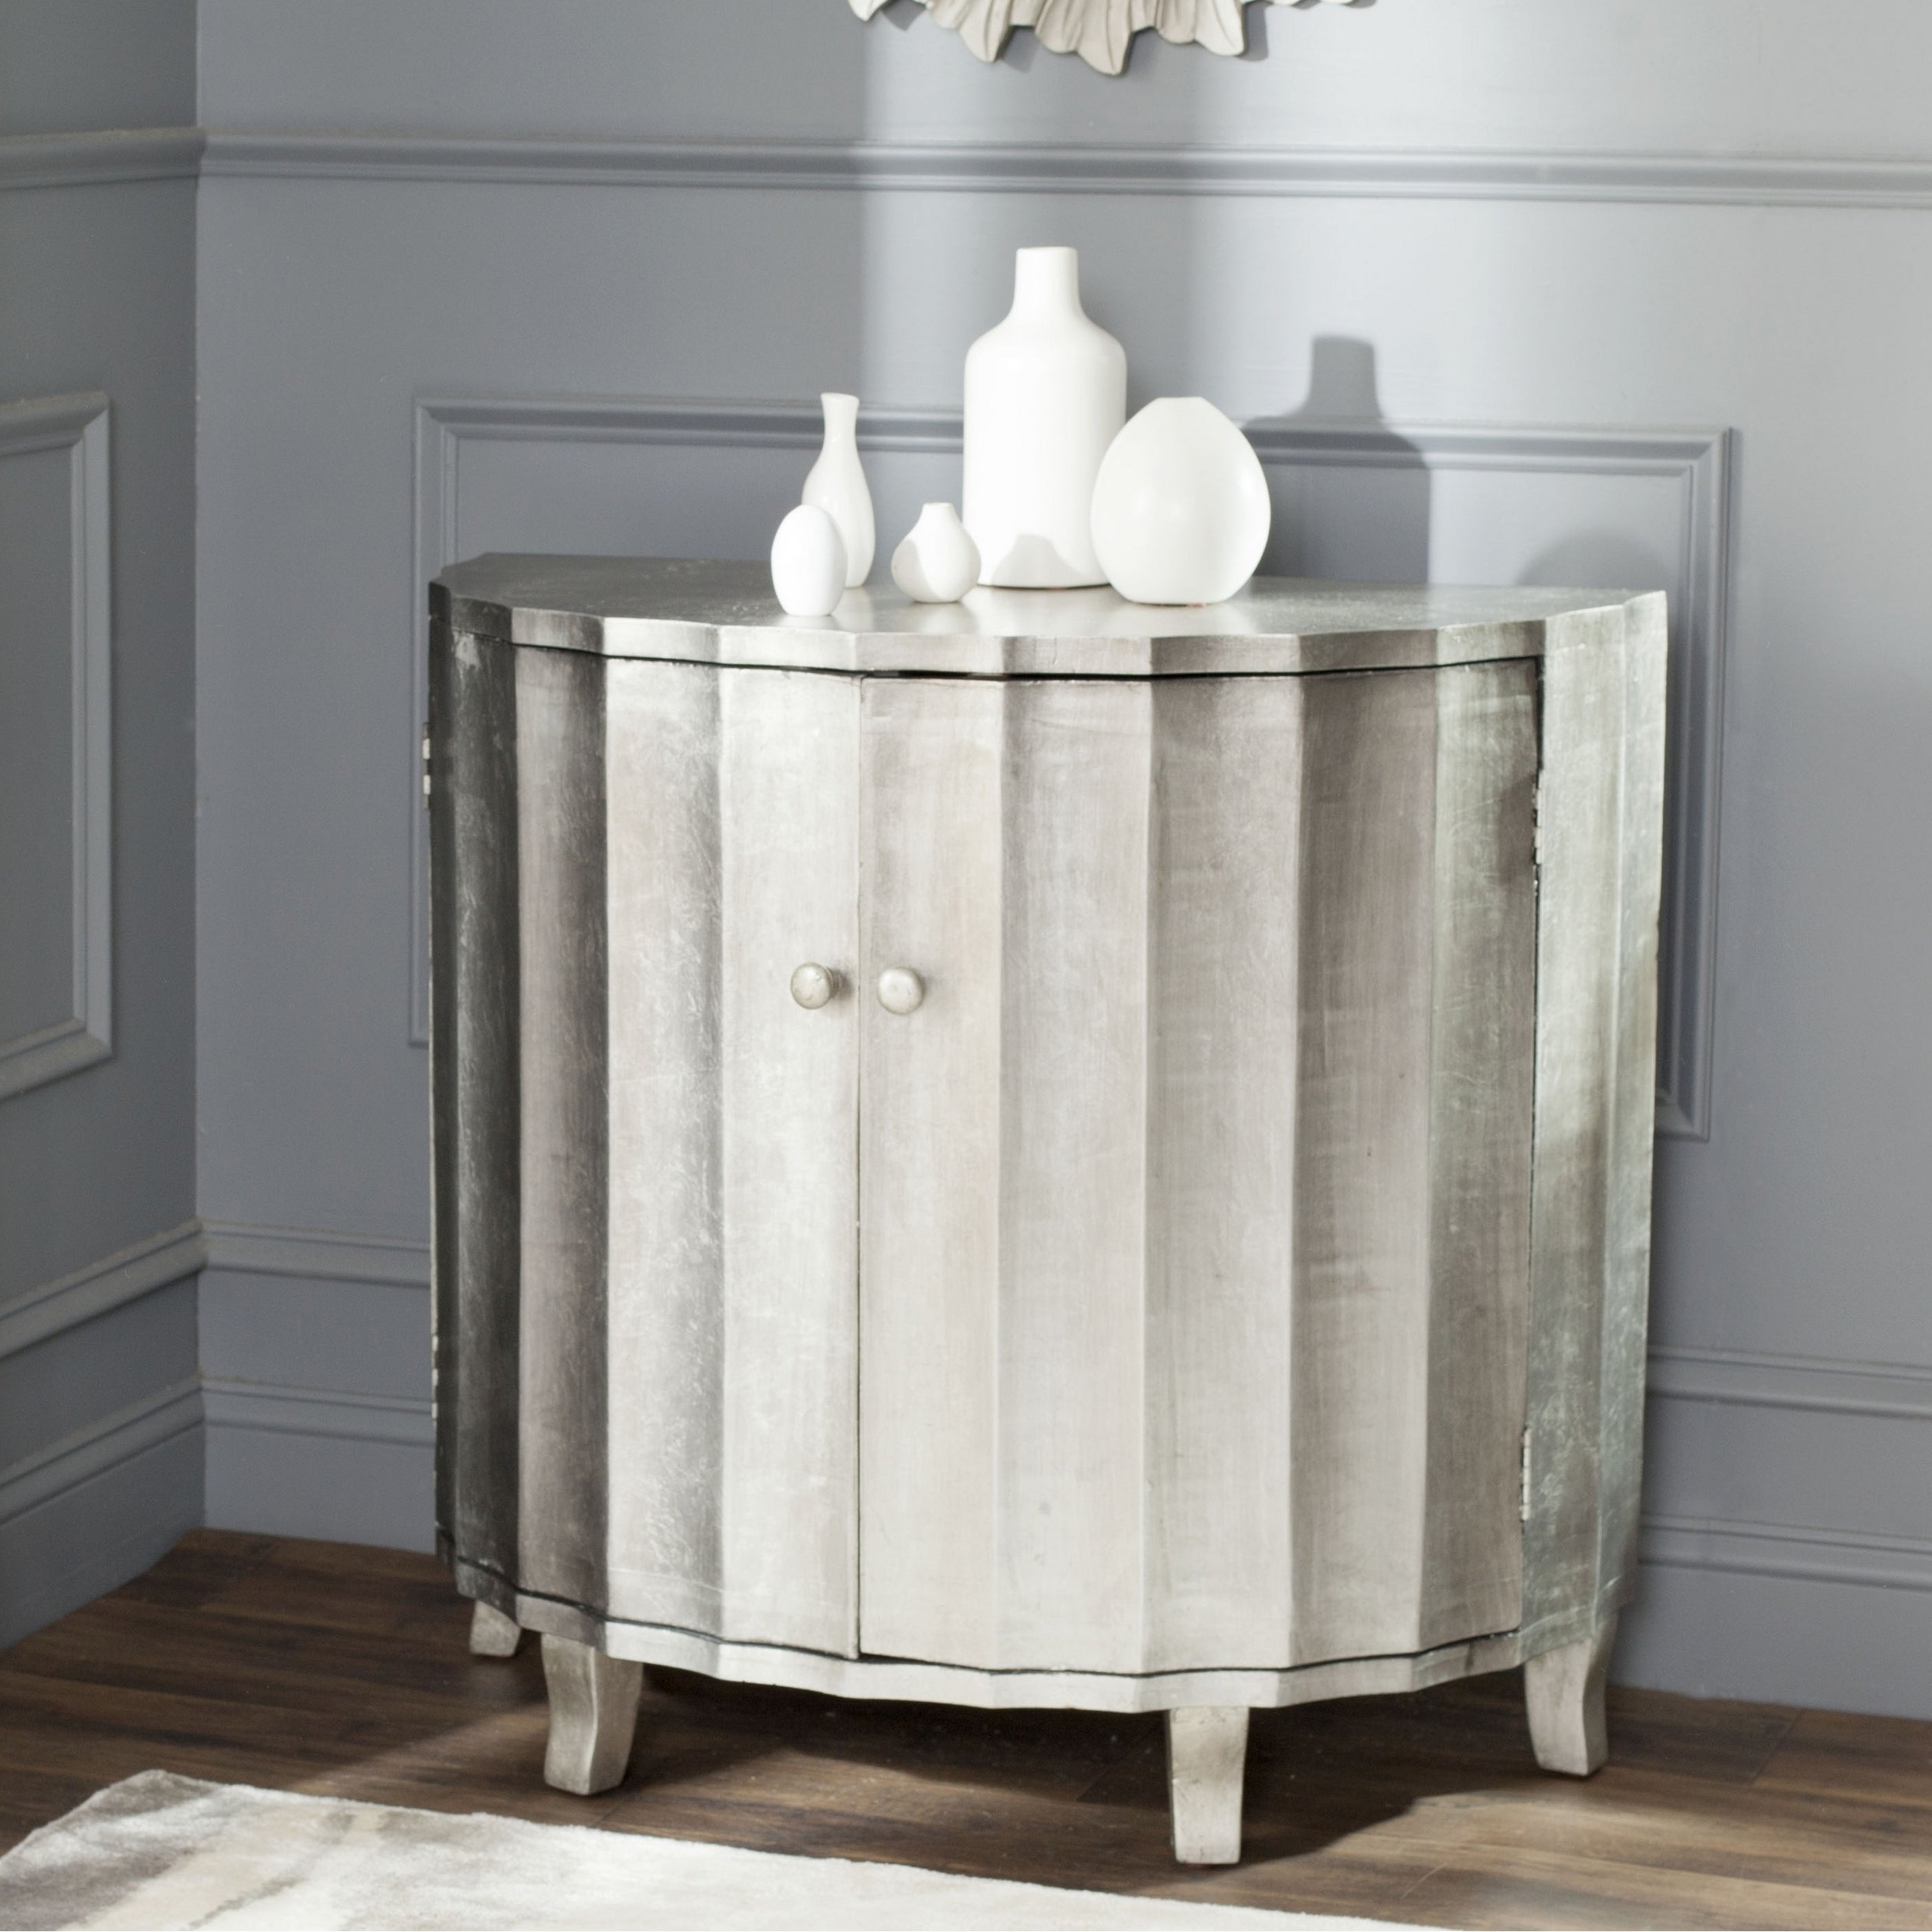 Safavieh Rutherford Demilune Silver Leaf Cabinet Throughout Most Up To Date Rutherford Sideboards (Gallery 10 of 20)